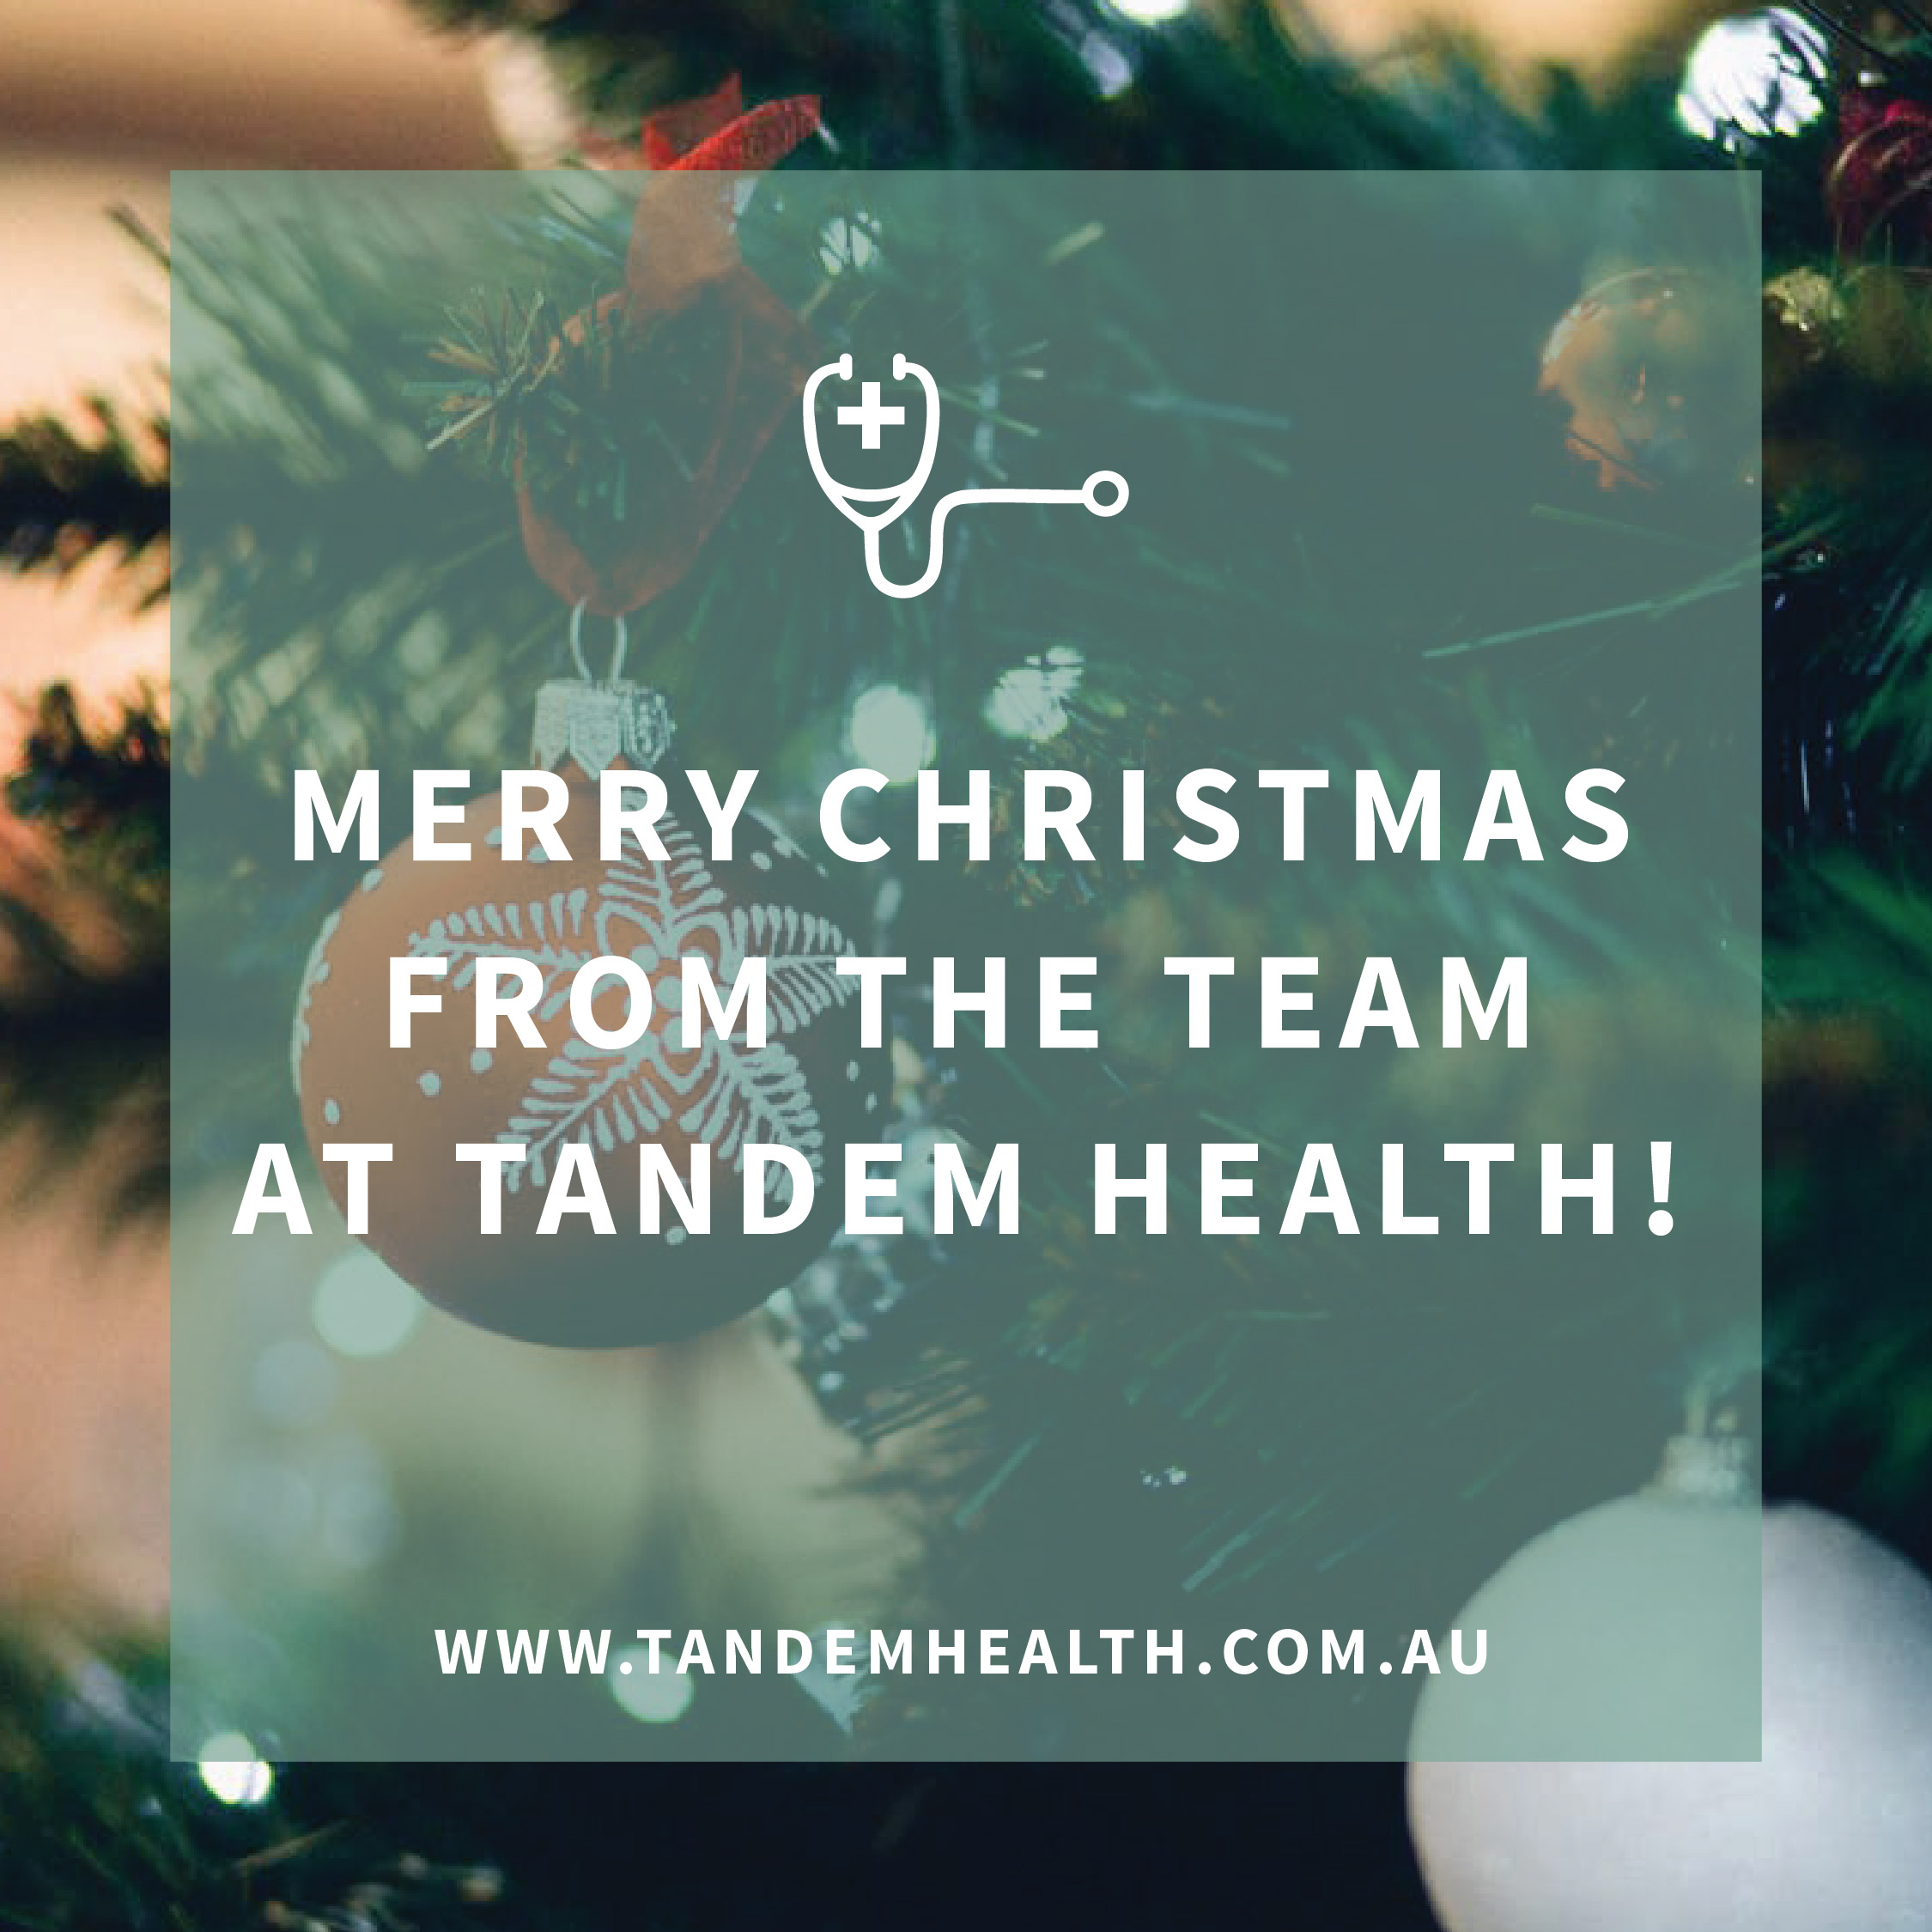 Merry Christmas from Tandem Health